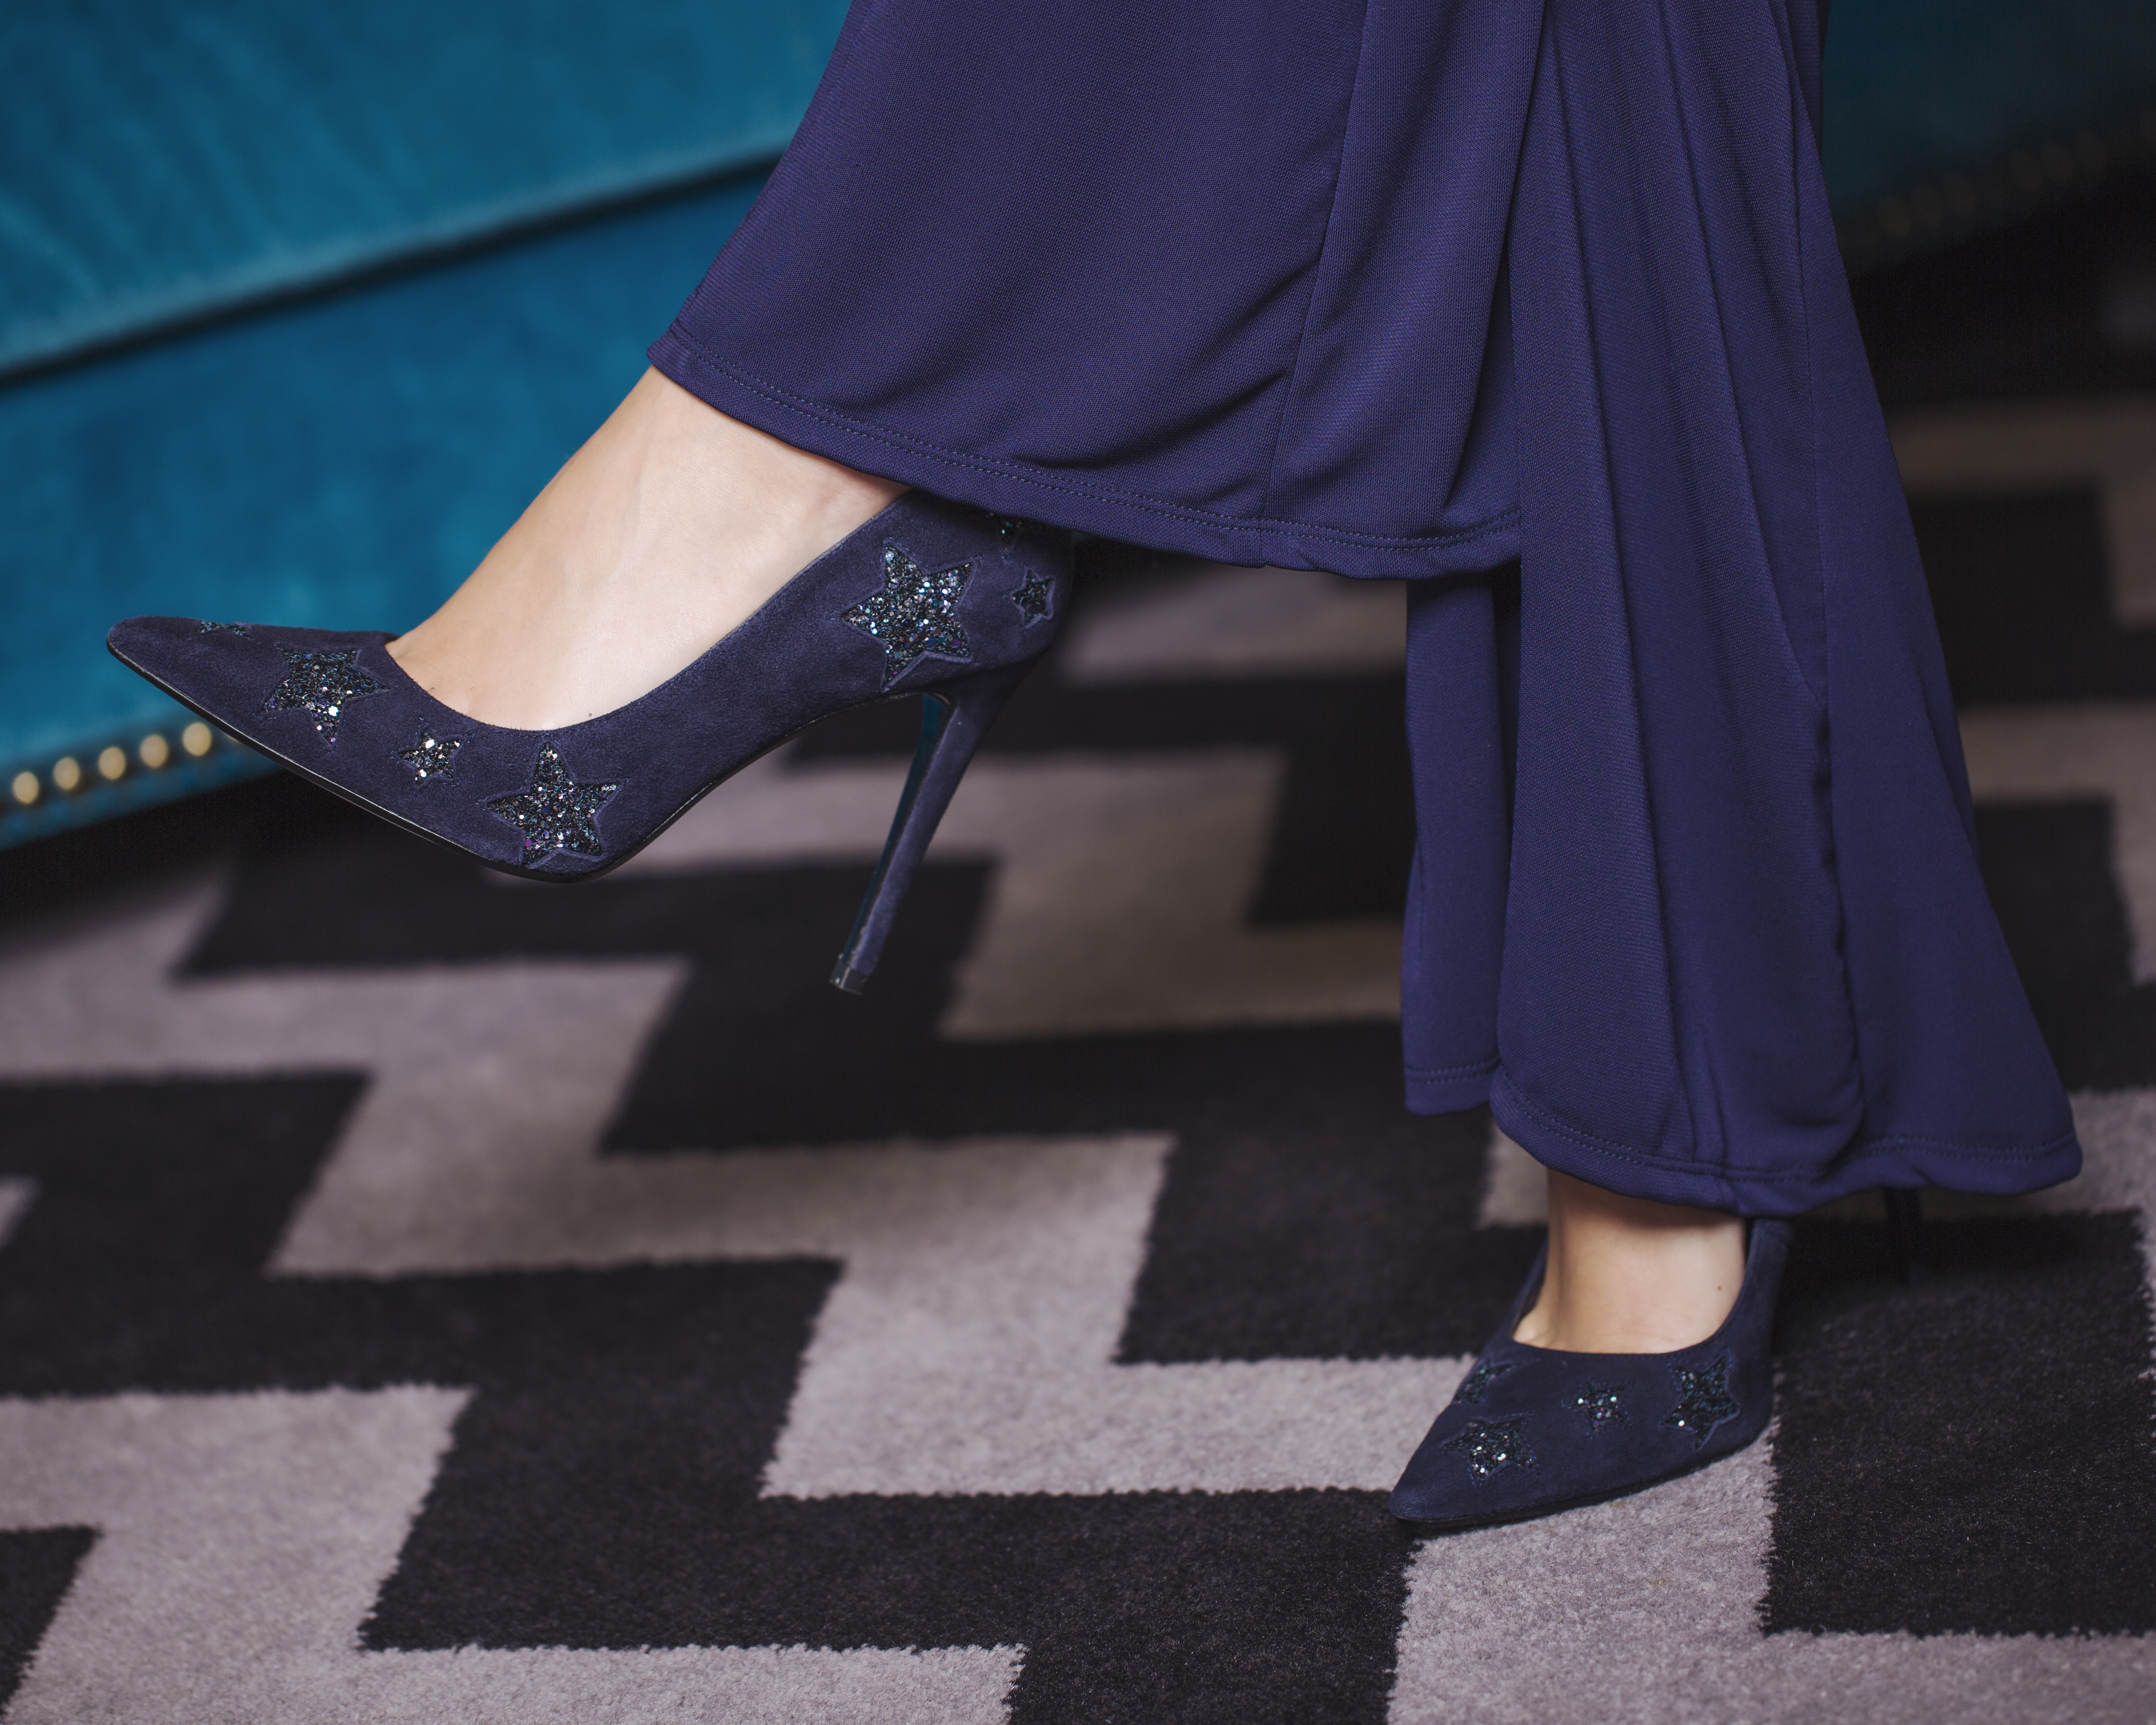 HOTEL GOTHAM MANCHESTER MAKES THE PERFECT PARTY SEASON BACKDROP FOR DUNE SHOES